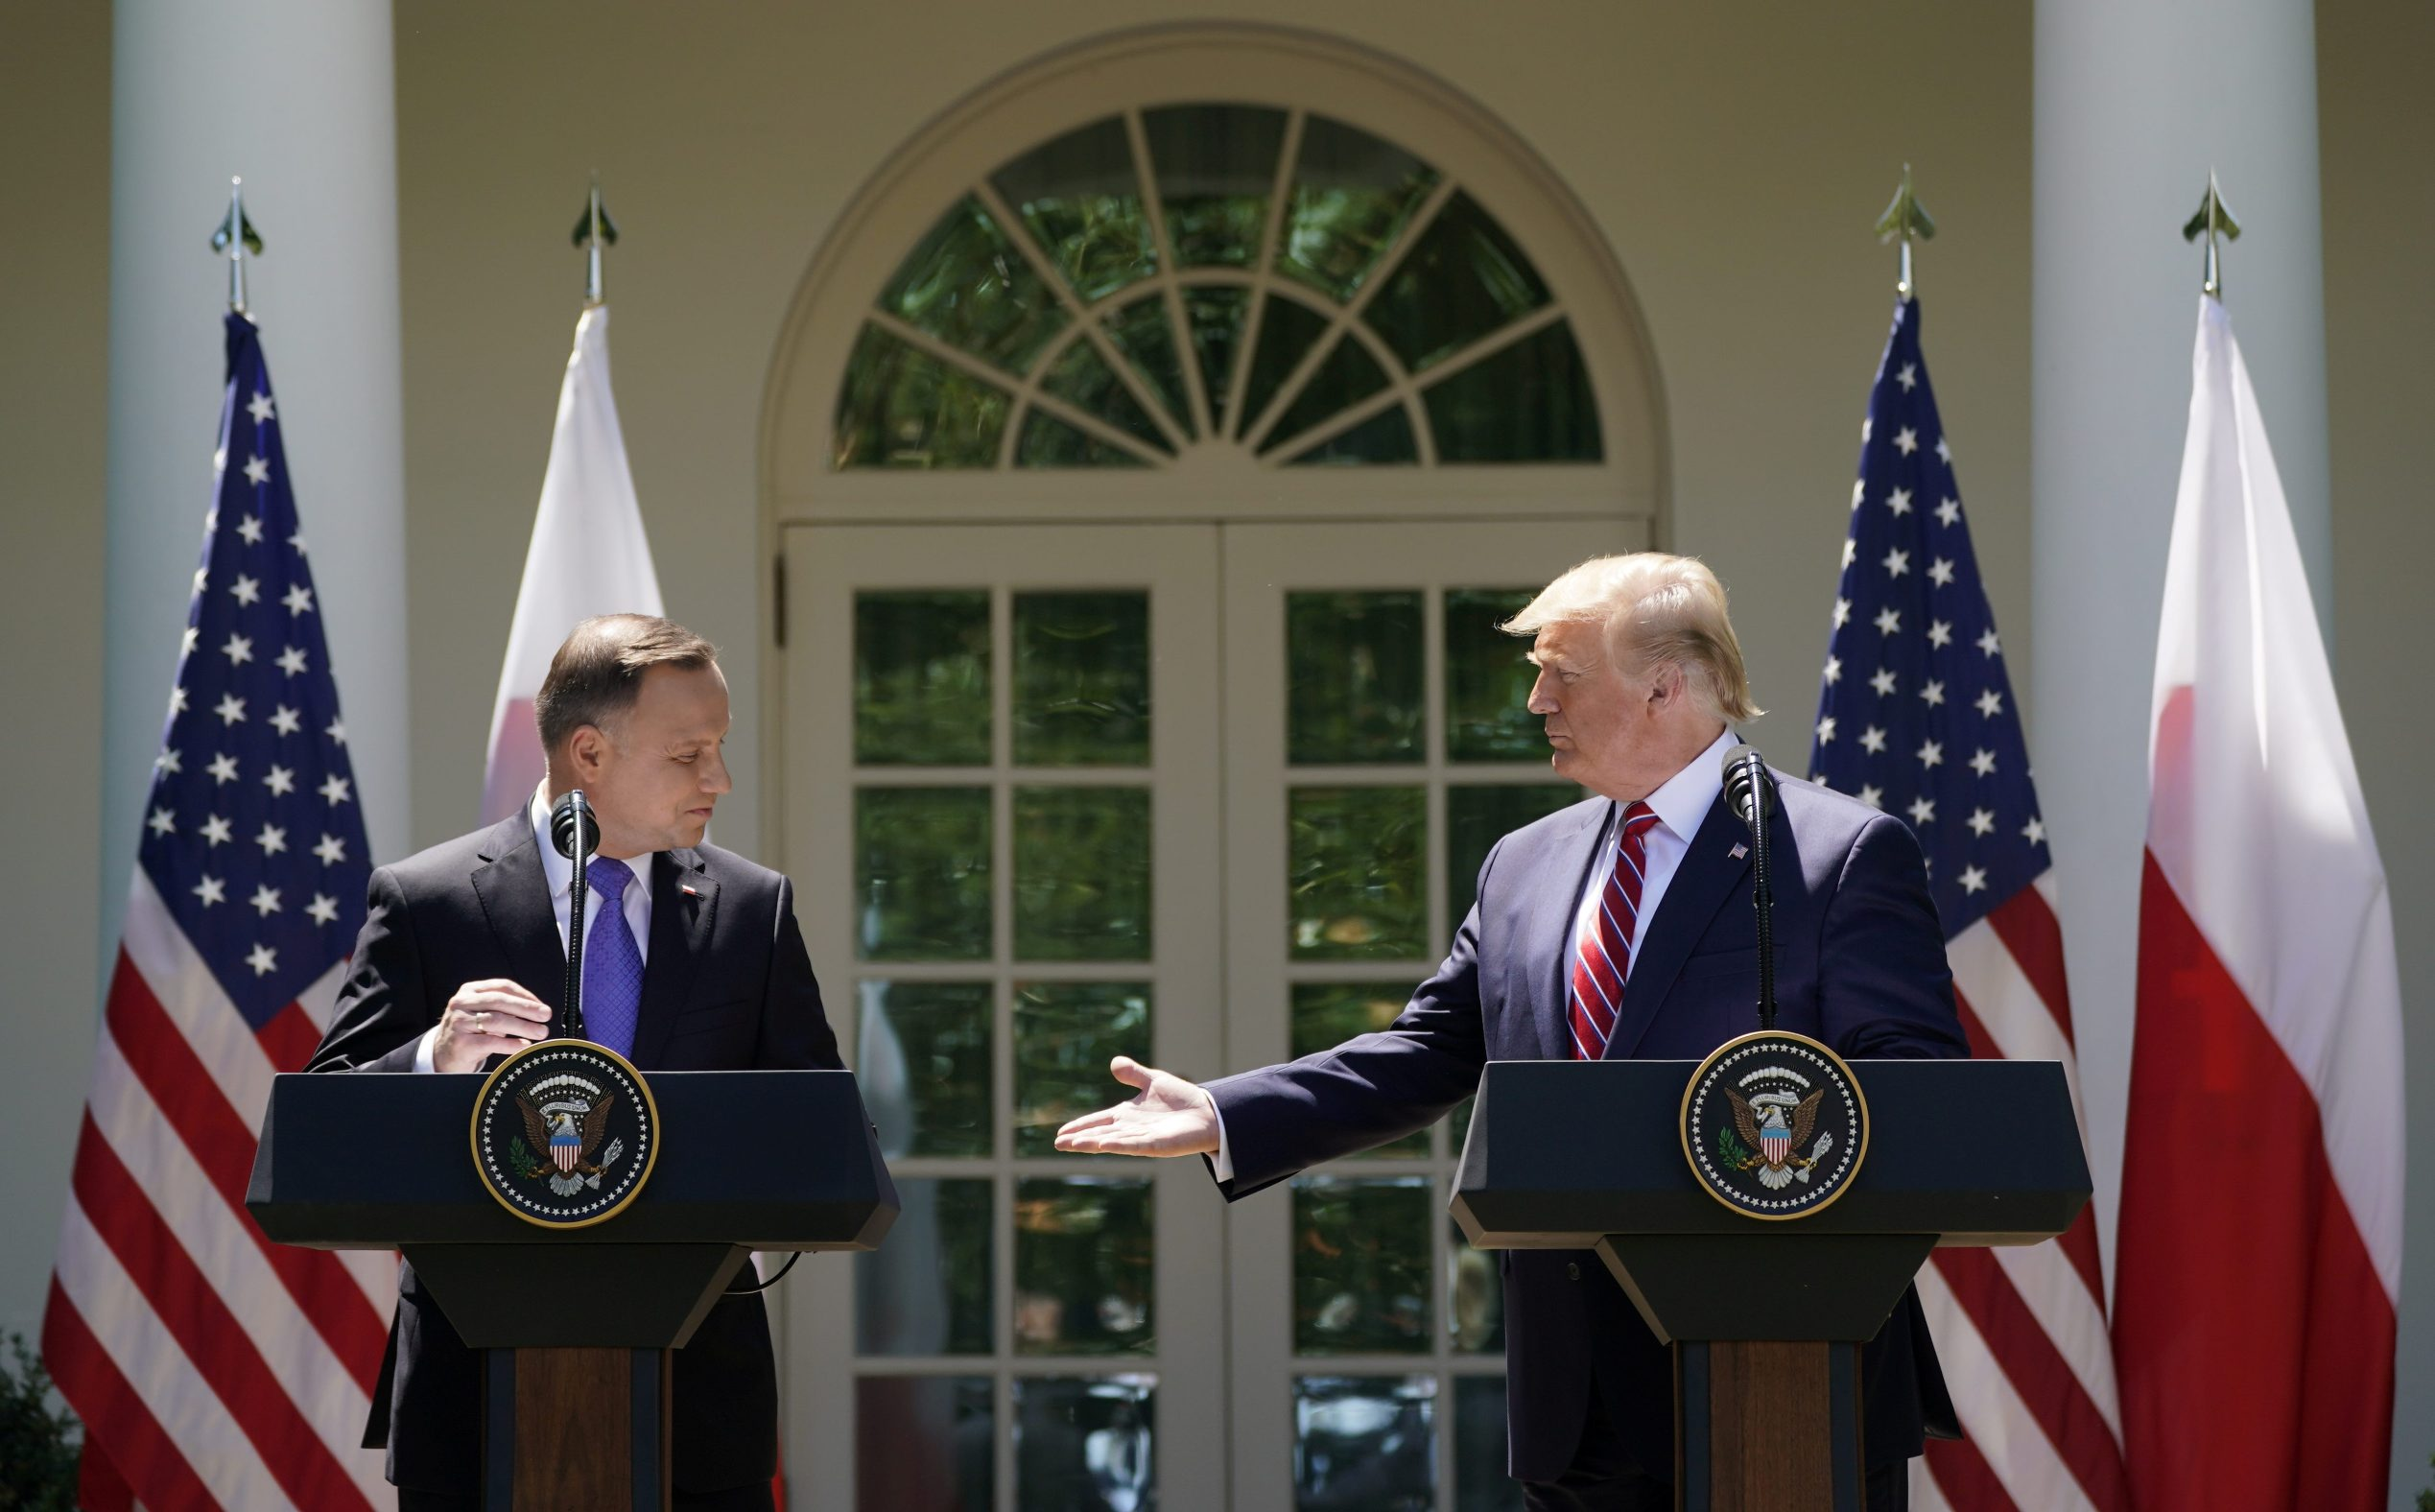 U.S. President Donald Trump and  Poland's President Andrzej Duda hold a joint news conference in the Rose Garden at the White House in Washington, U.S., June 12, 2019. REUTERS/Kevin Lamarque